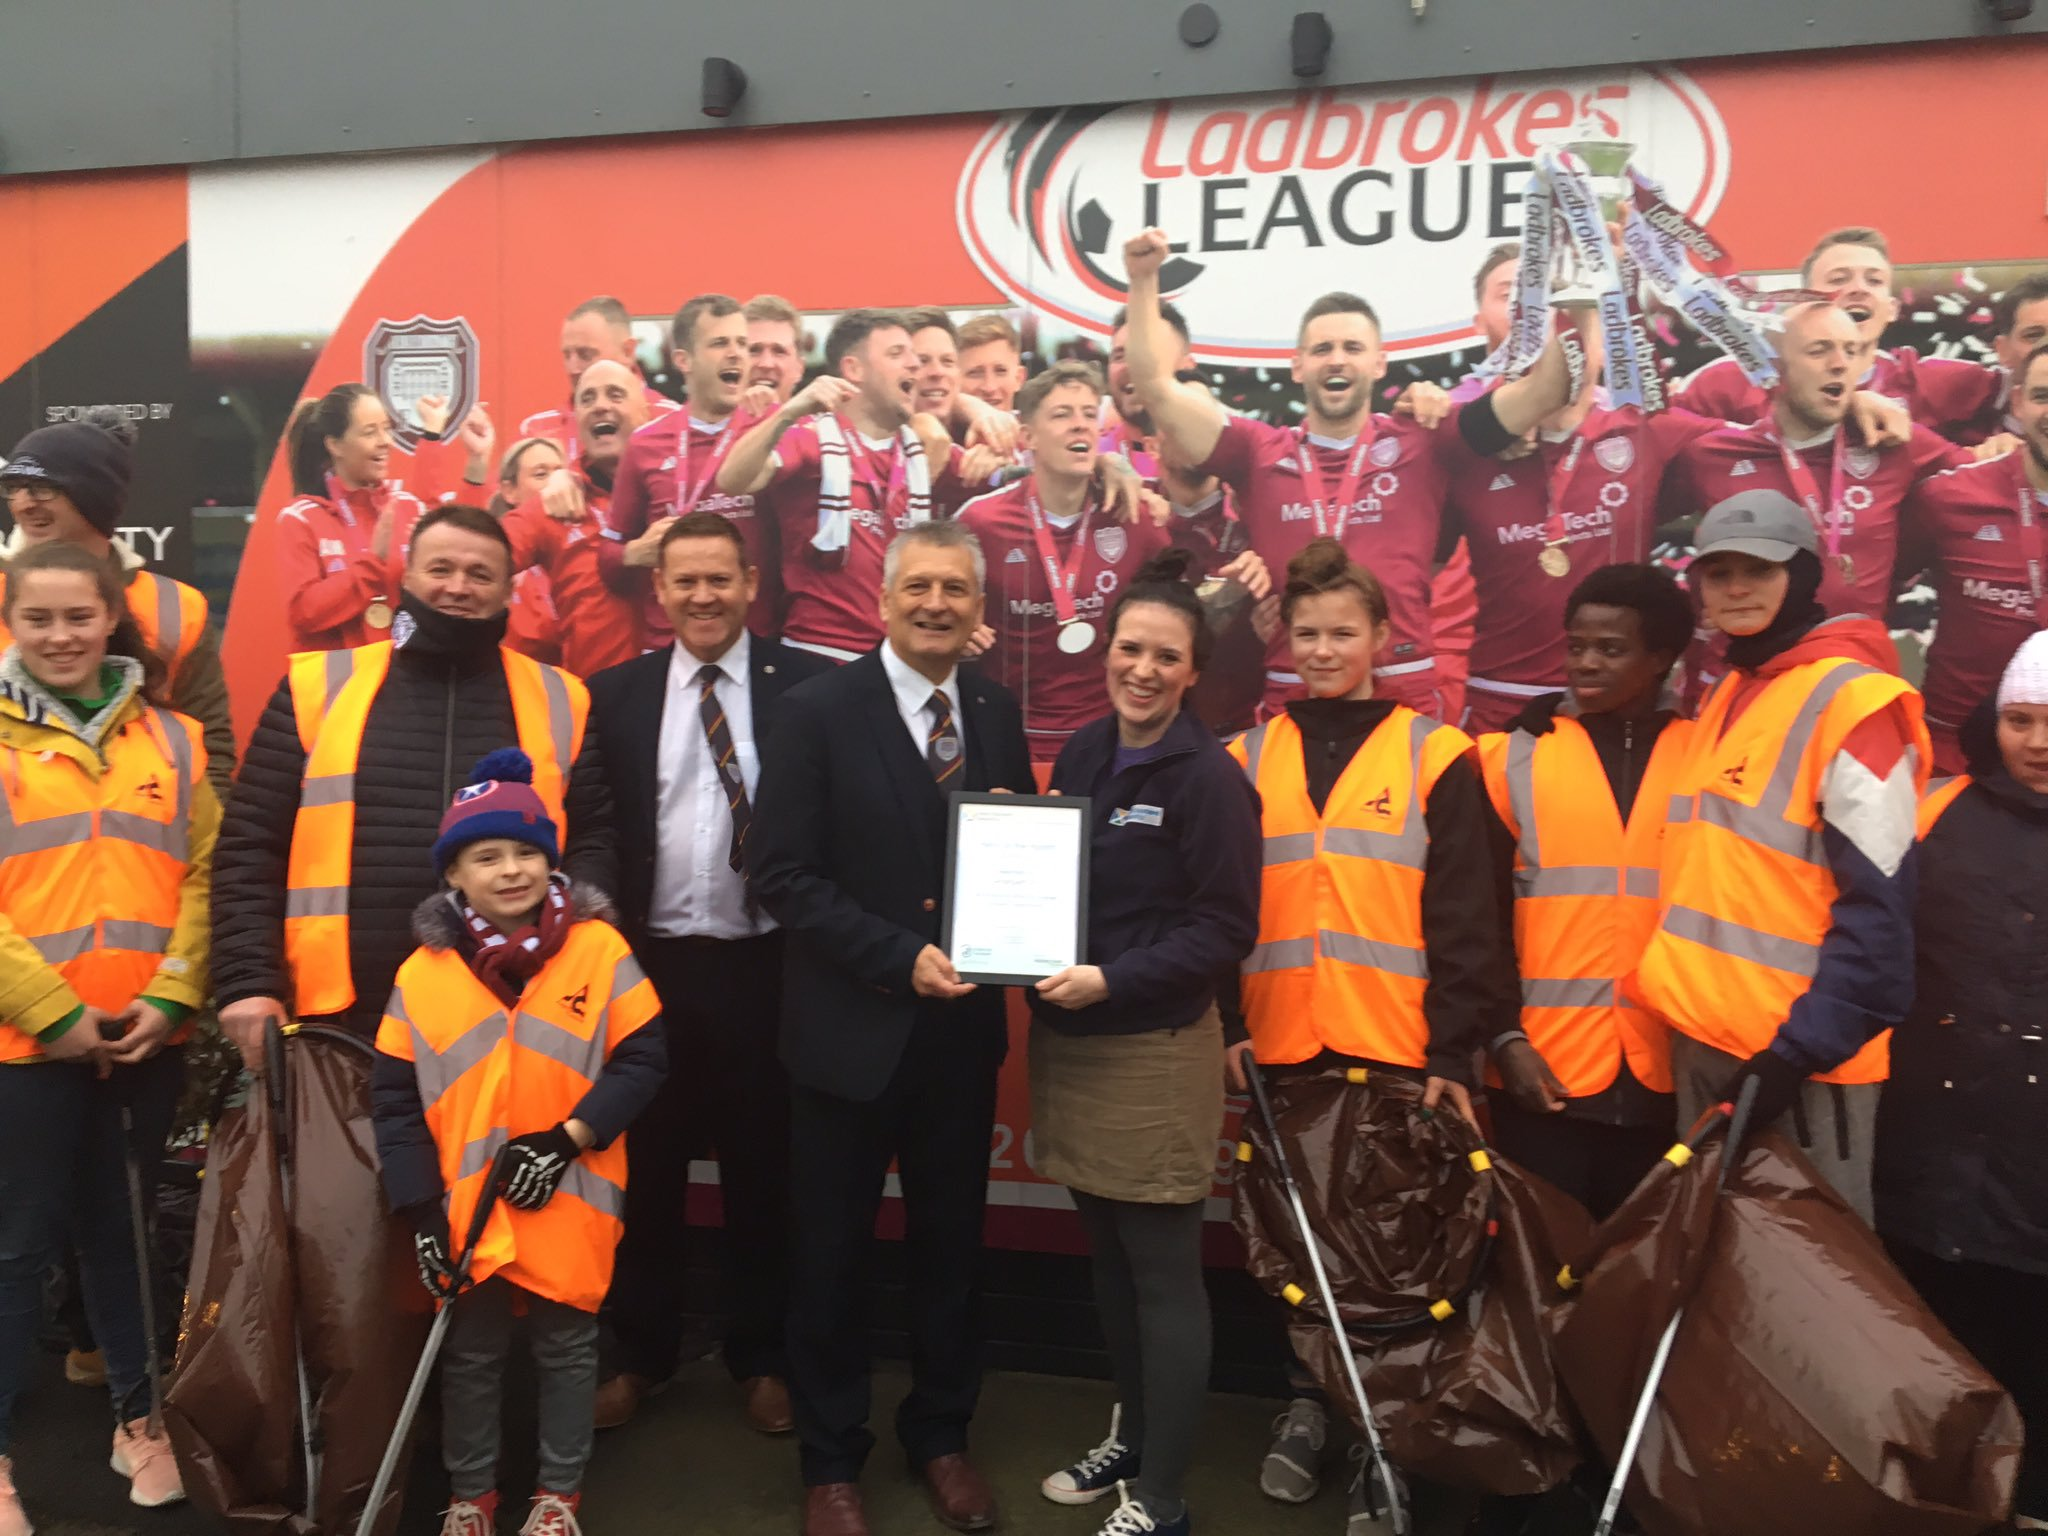 Heather McLaughlin of Keep Scotland Beautiful with Lichties chairman Mike Caird and the litter volunteers.